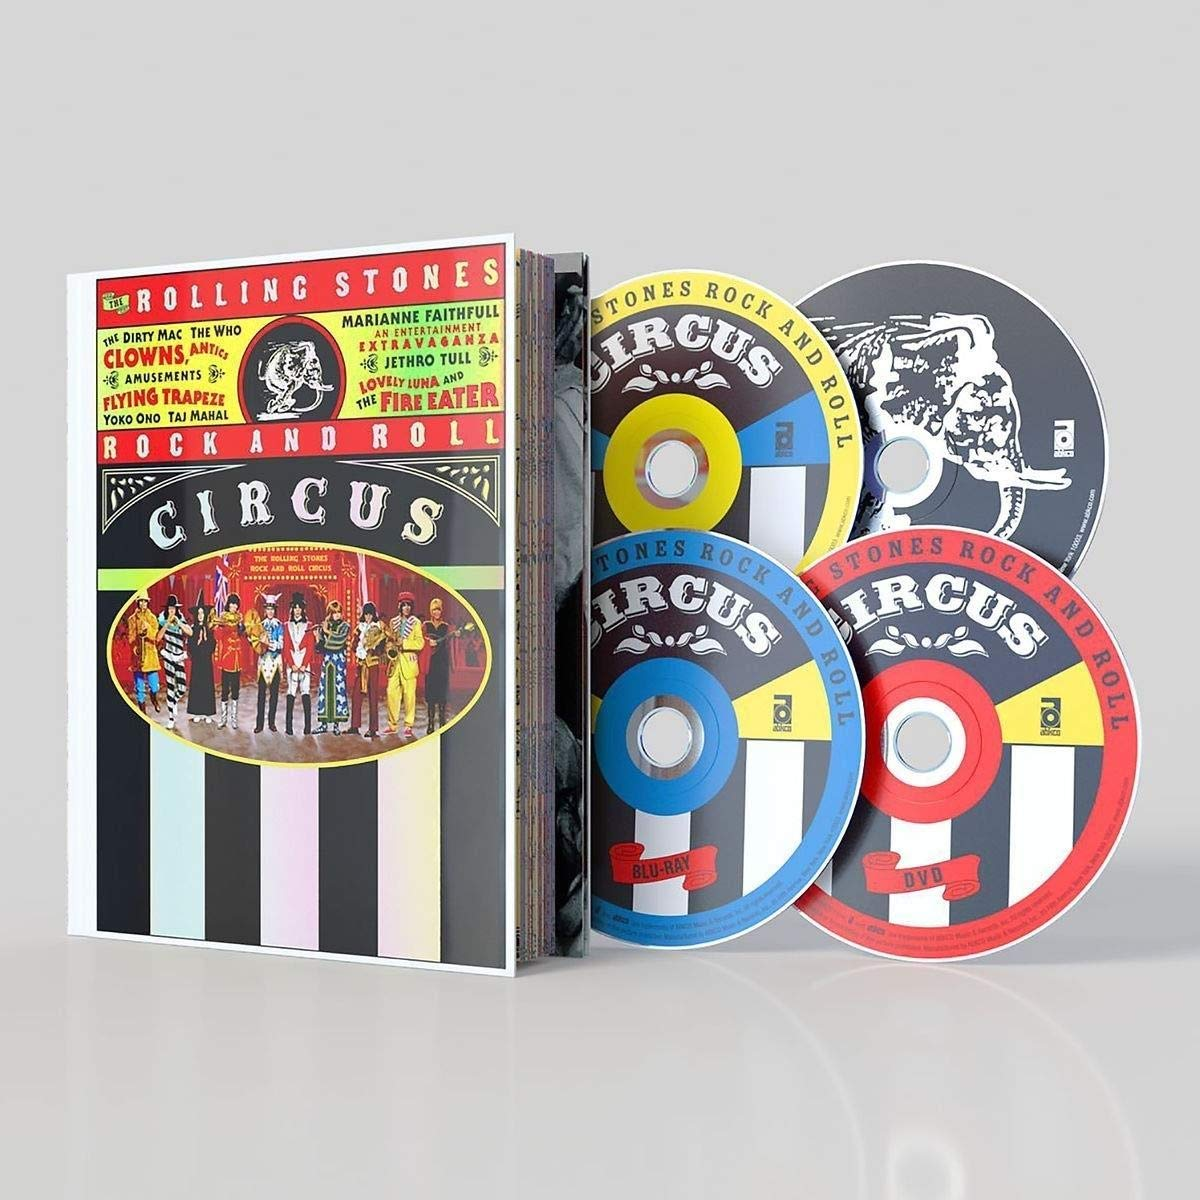 ROCK AND ROLL CIRCUS (3PC) (W / CD) / (LTD WBR-ROLLING STONES